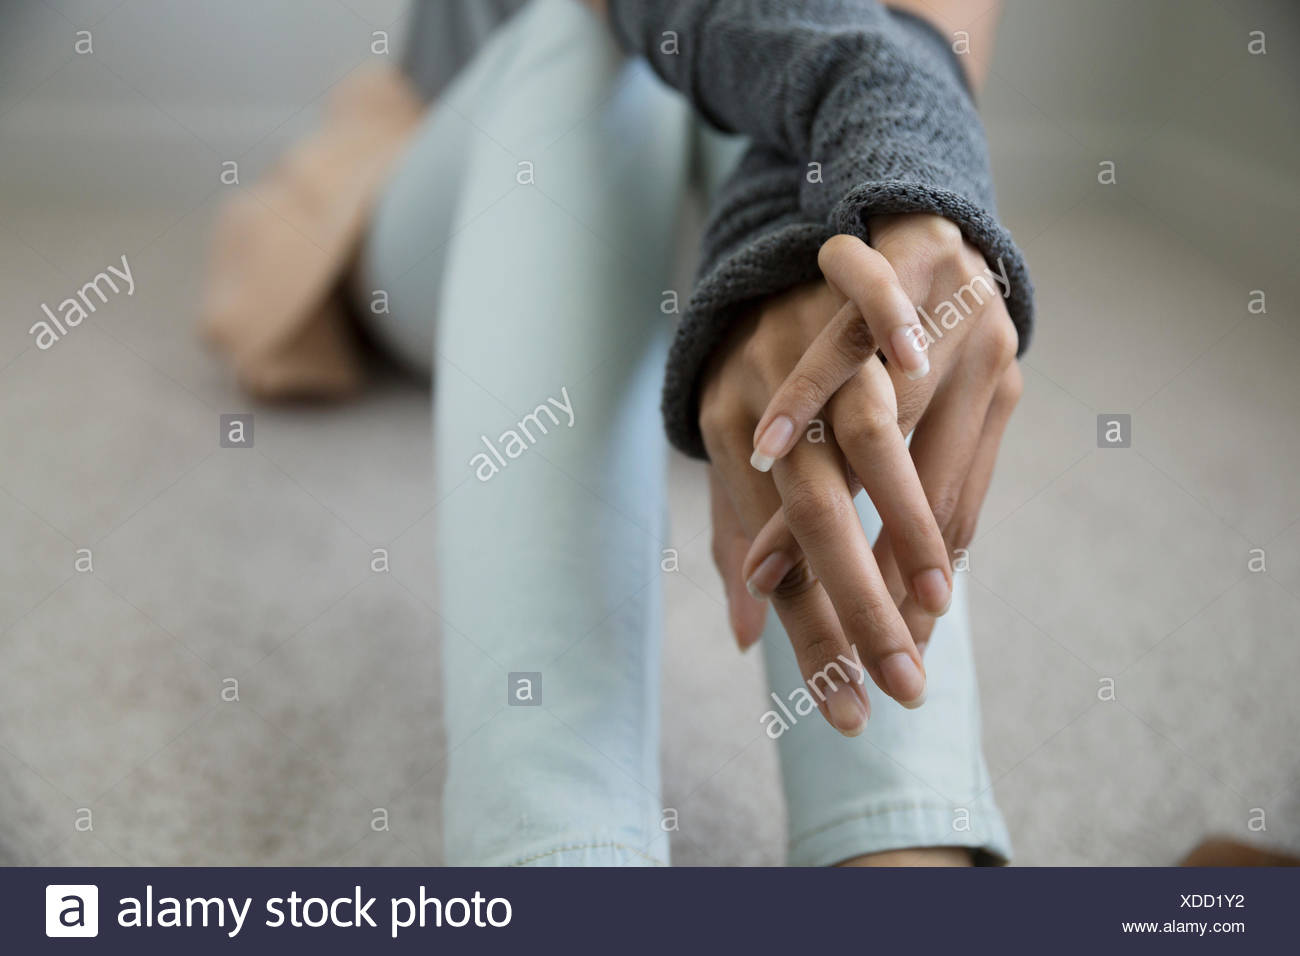 Close up young woman with hands clasped Photo Stock